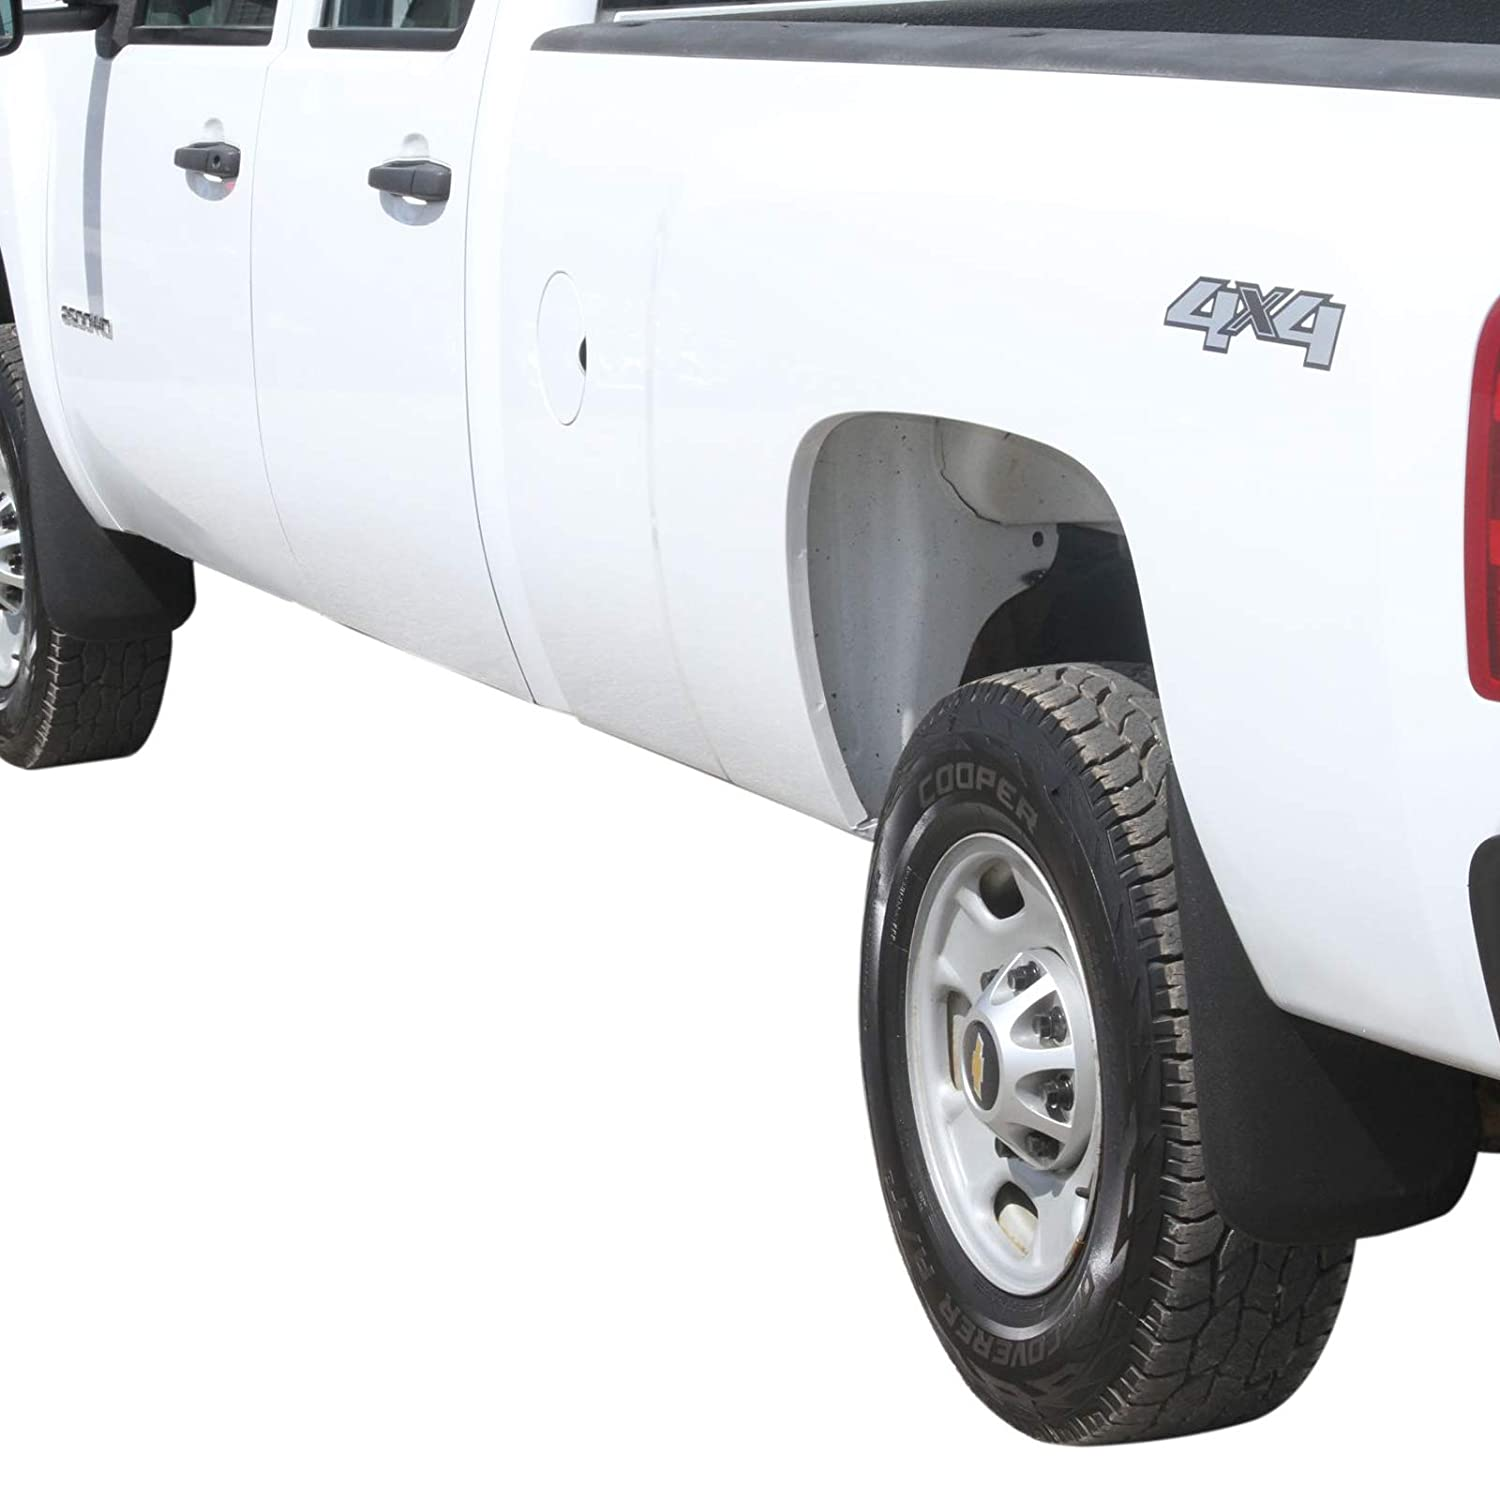 Premium Heavy Duty Molded 2007-2013 Compatible with Silverado 1500 Mud Flaps Guards Splash Front /& Rear 4pc Set